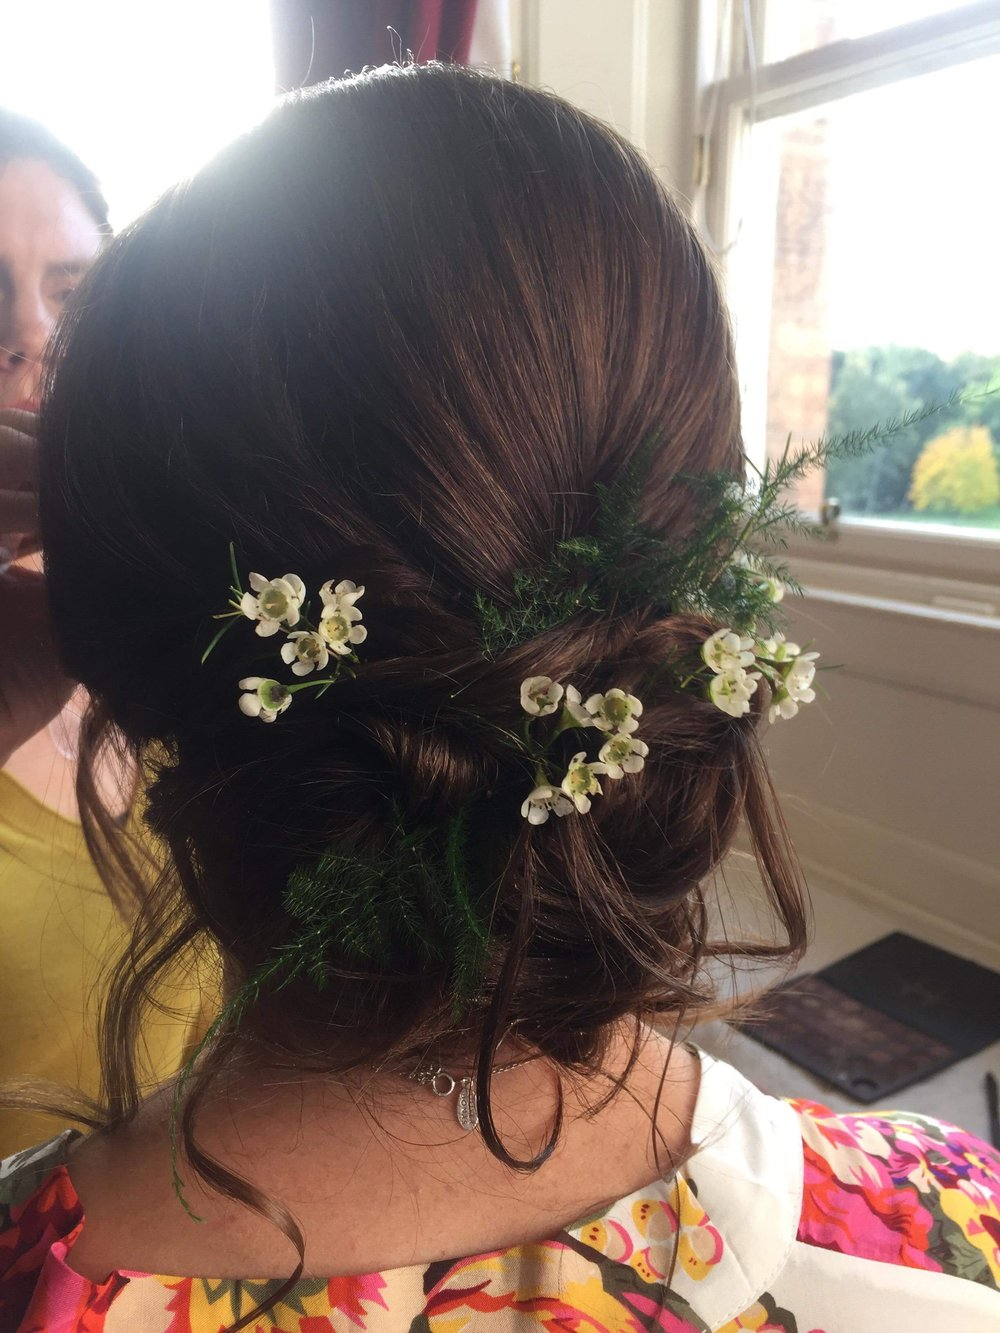 Monica placed fresh flowers on her natural looking hairstyle (it was full of Elnett but looked natural)!